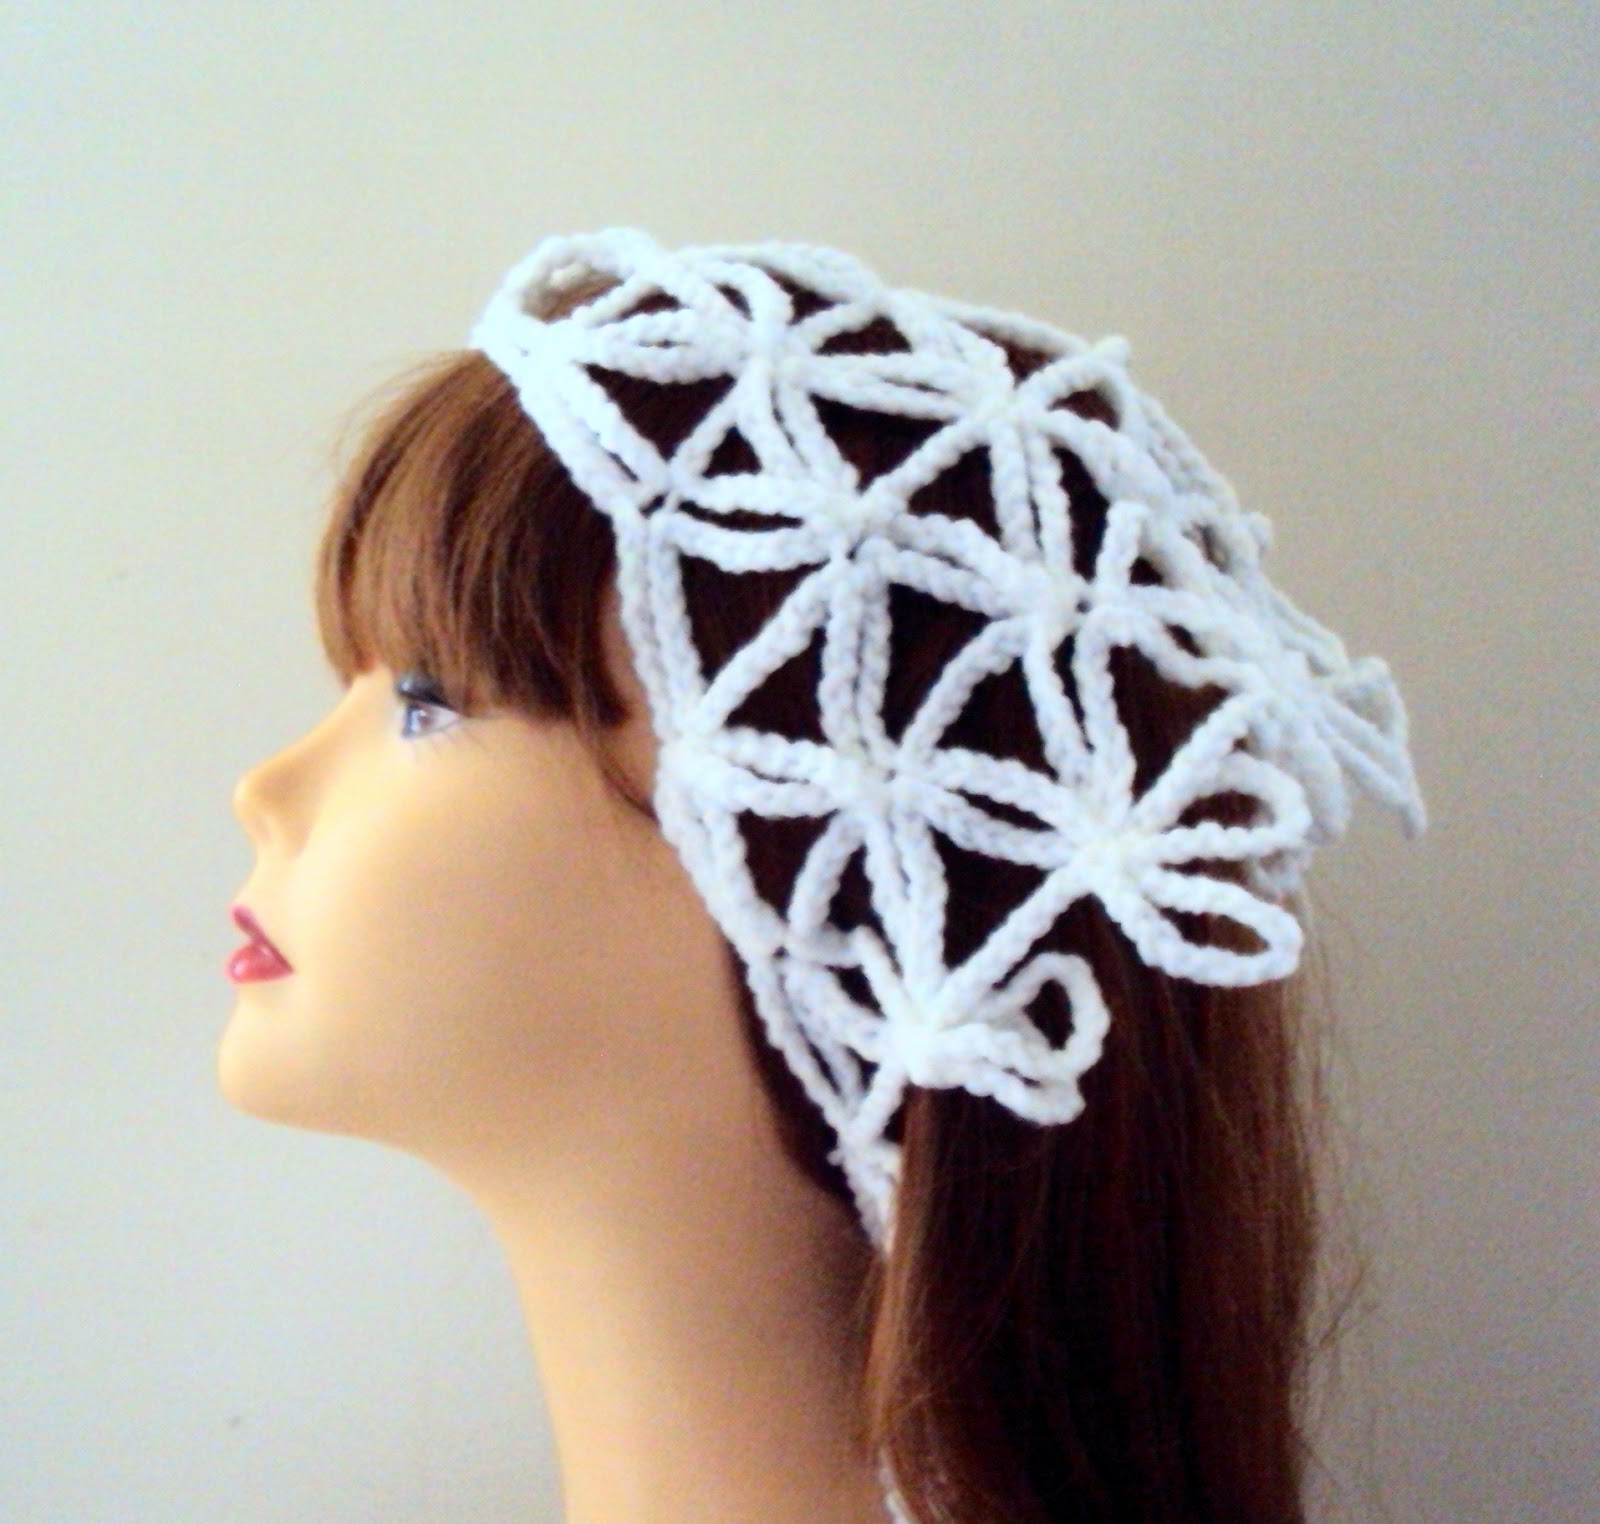 https://www.etsy.com/listing/227445911/crochet-headband-white-yoga-bandana?ref=shop_home_active_4